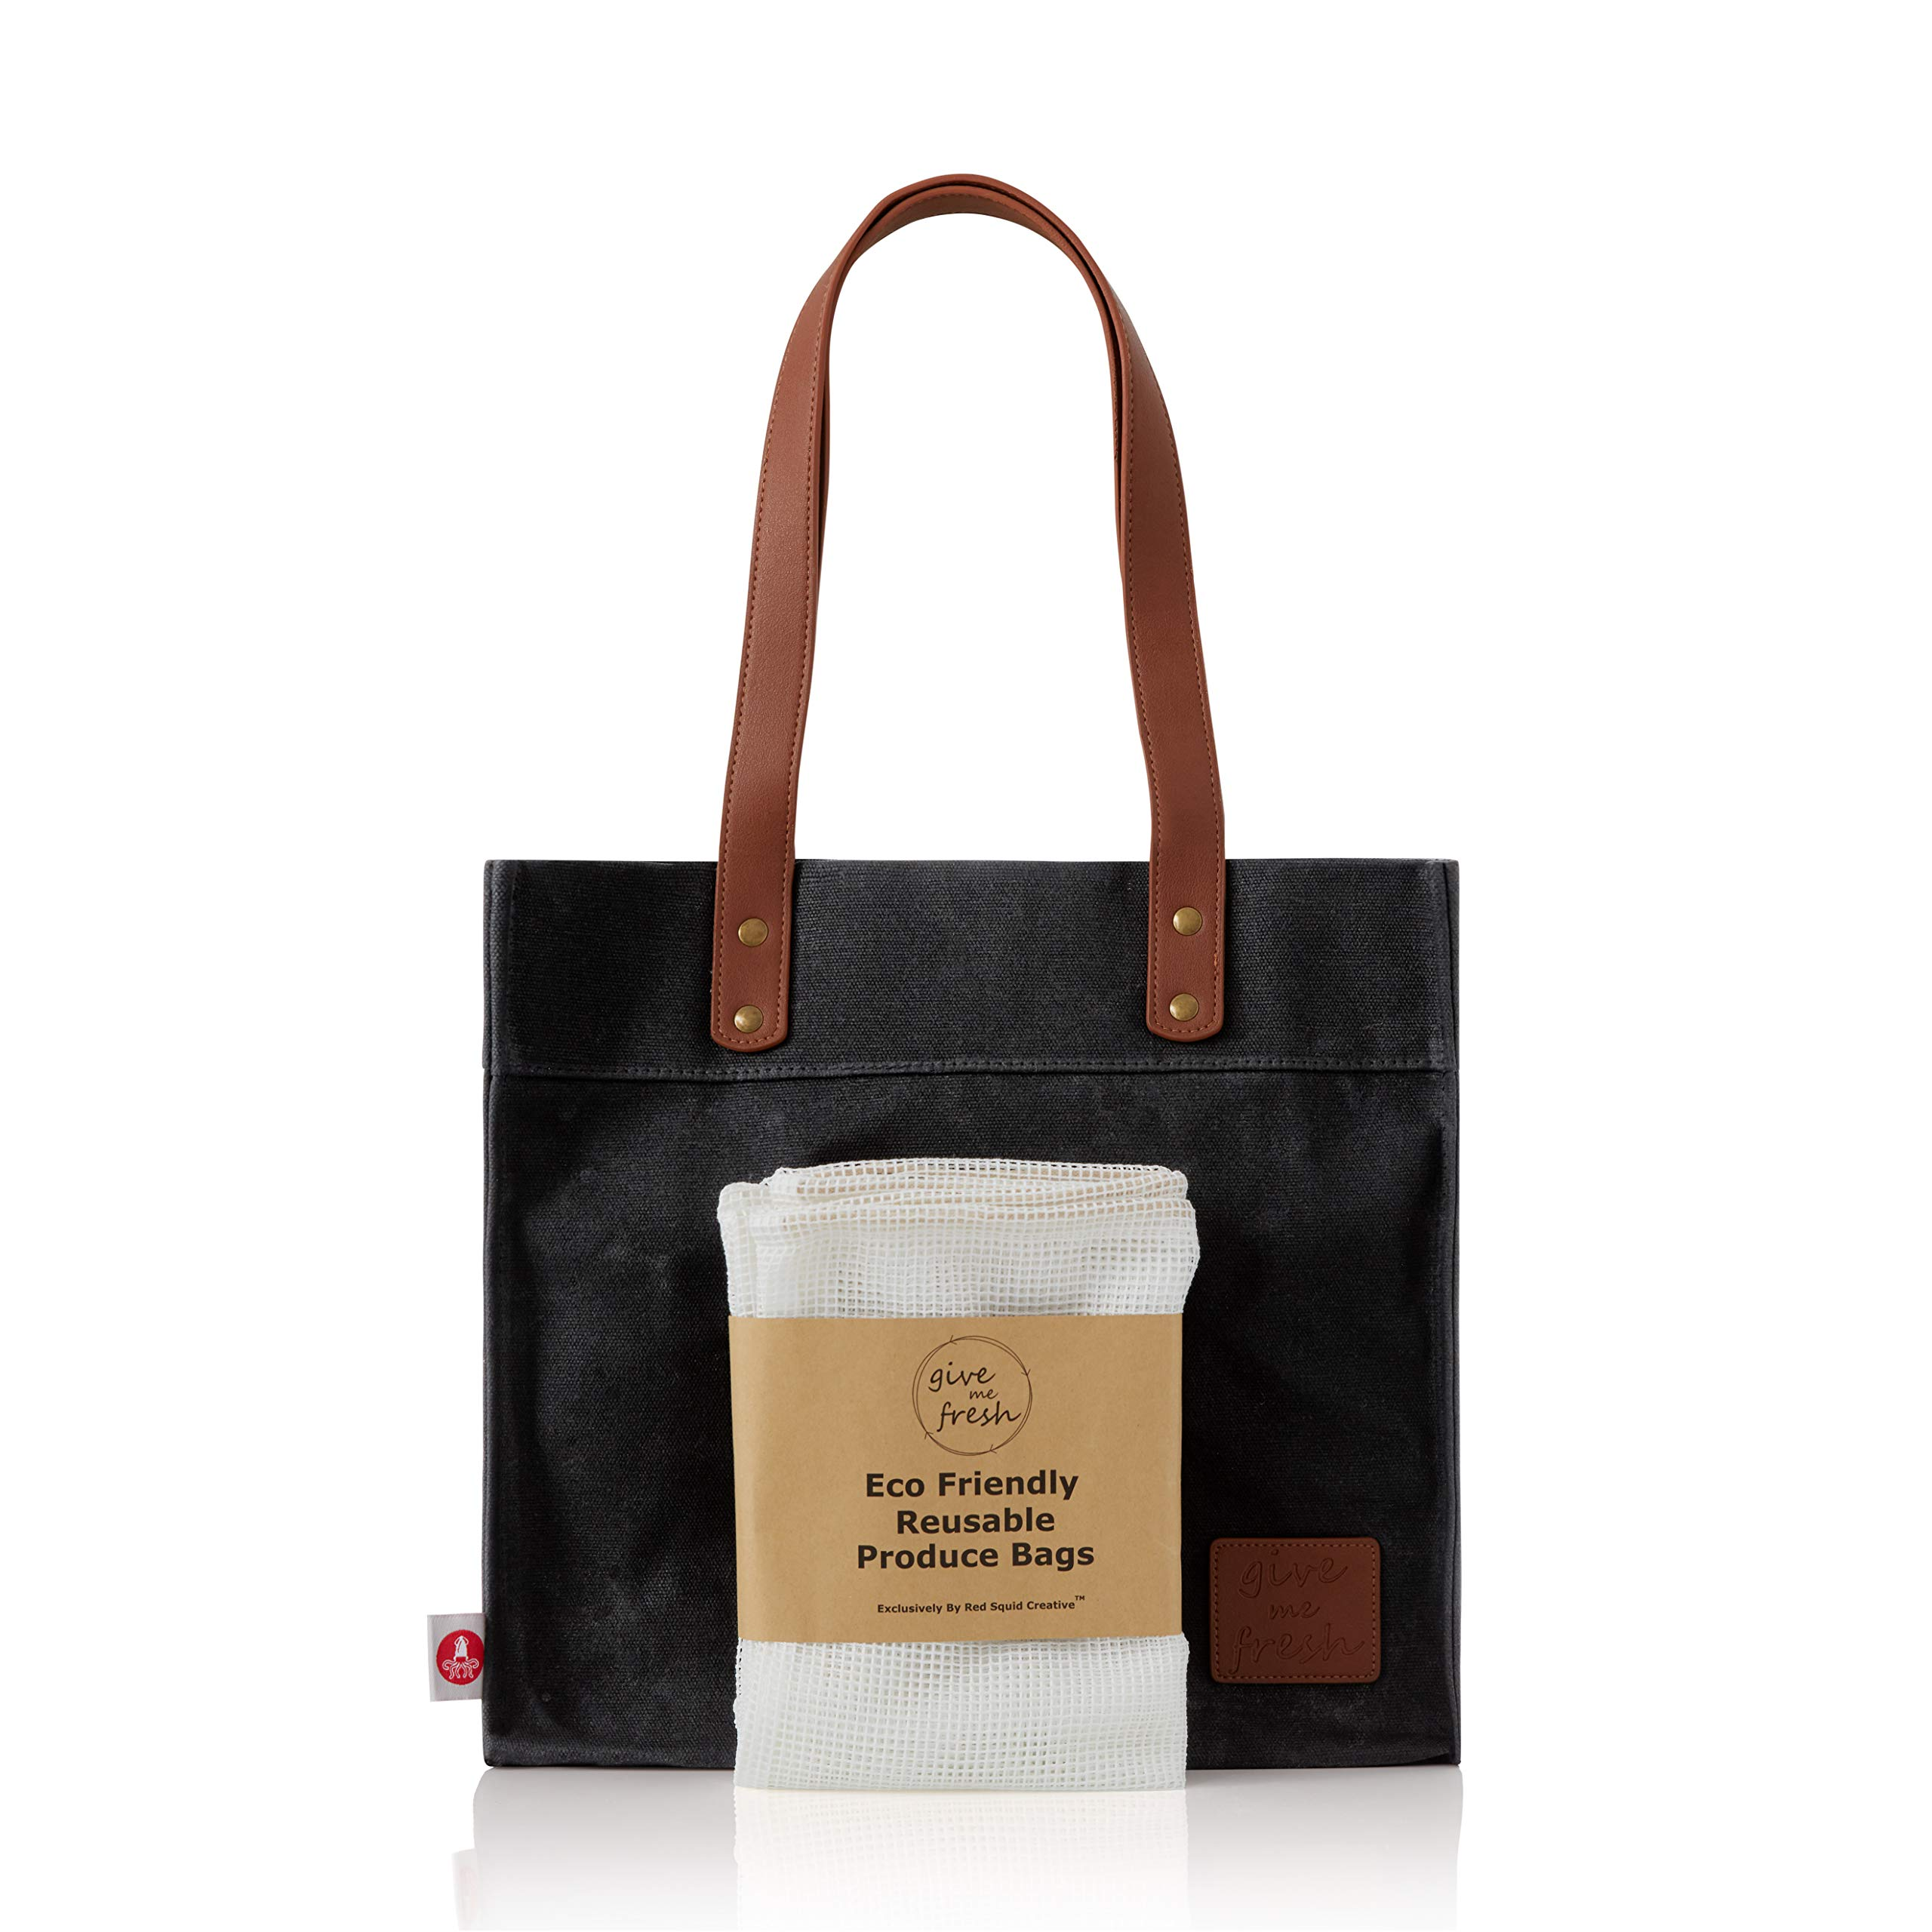 Give Me Fresh No. 2 - SET - Waxed Canvas Grocery Bag PLUS 3 Reusable Mesh Produce Bags, Durable Waxed Canvas Bag, Waxed Canvas Tote Bag with 2 Large Handy Pockets, Water Resistant Waxed Cotton